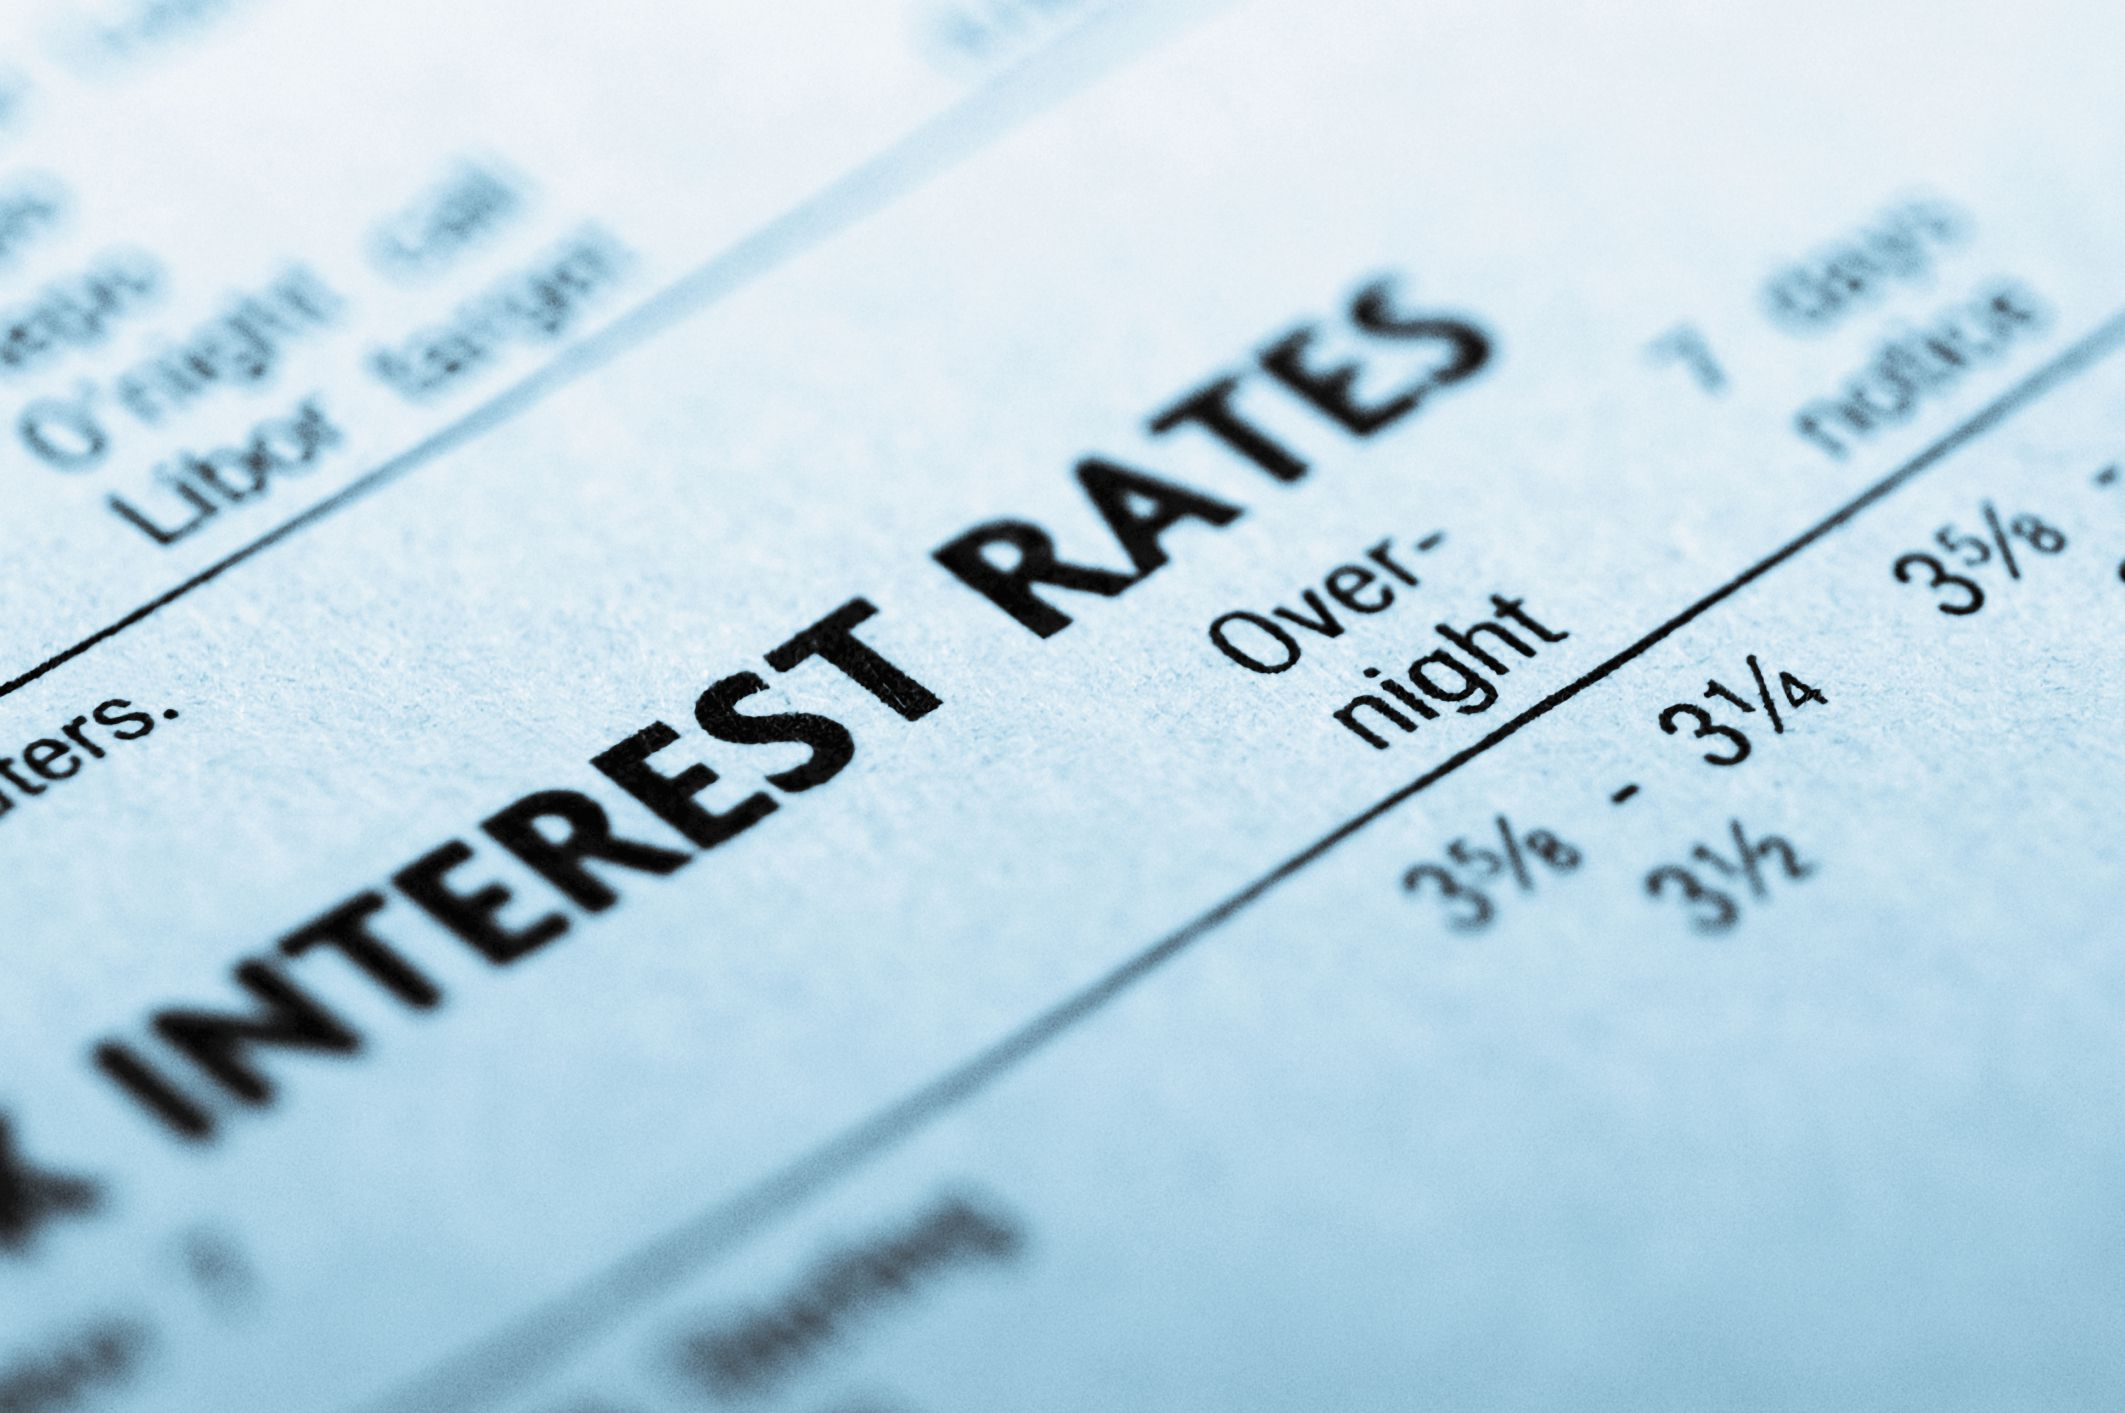 Interest Rate Definition